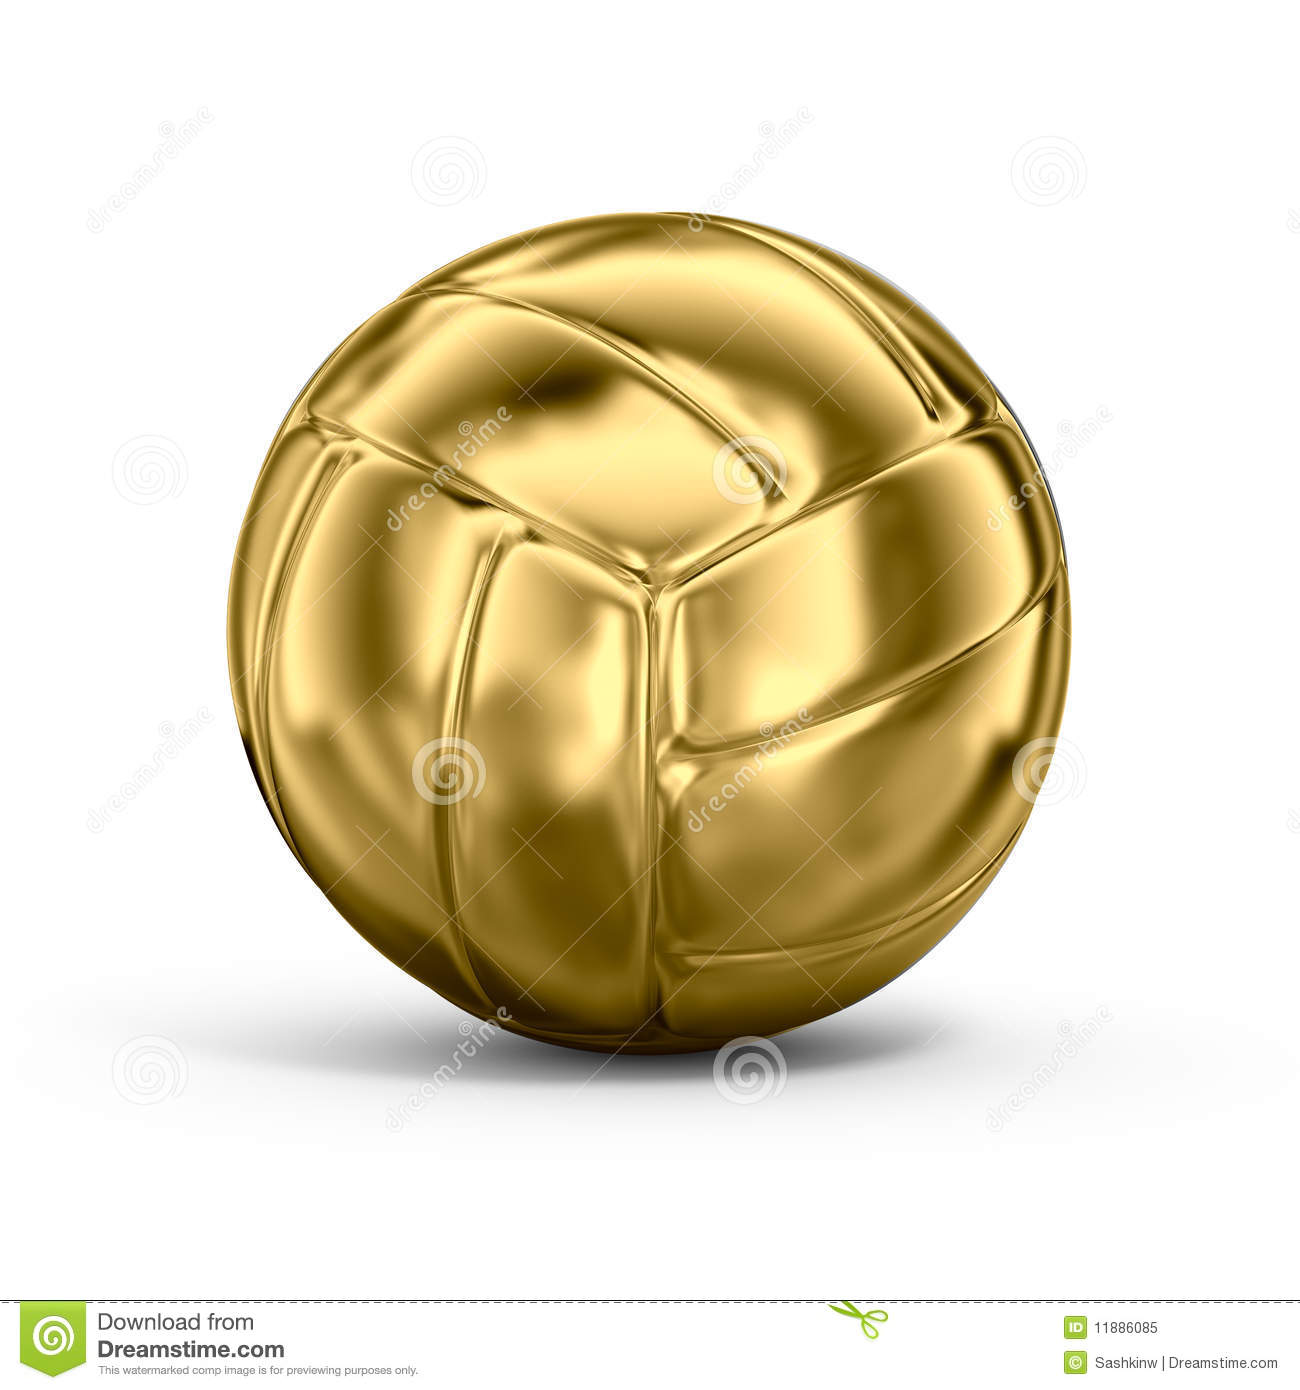 Gold Volleyball Royalty Free Stock Photo - Image: 11886085